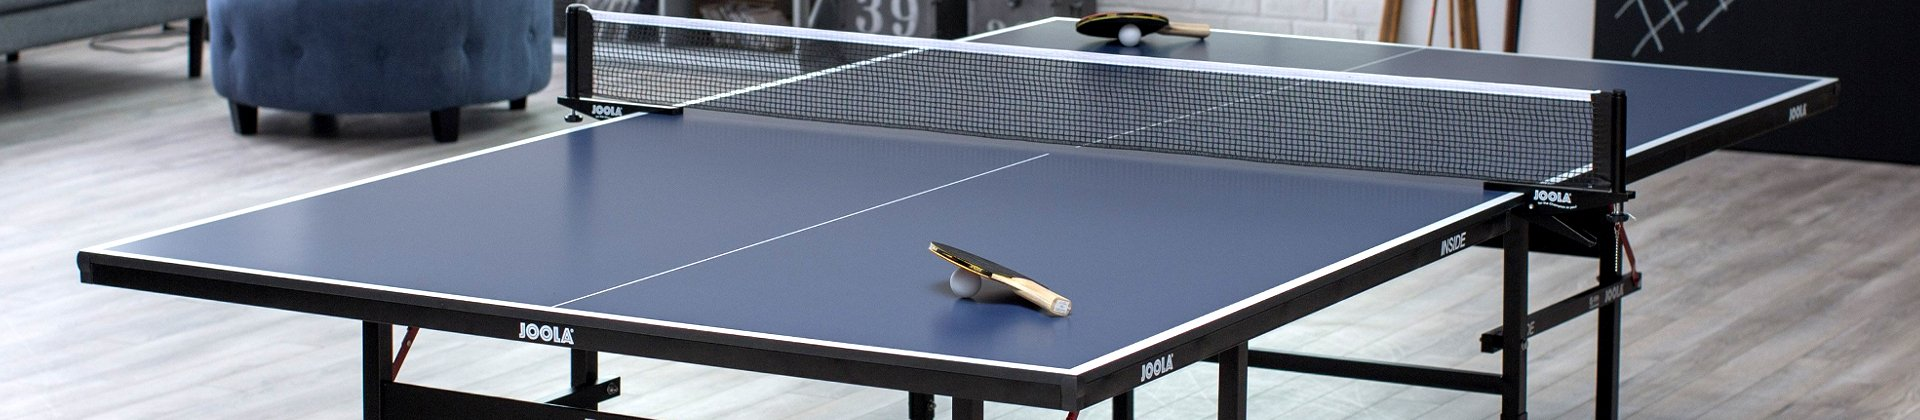 Awe Inspiring 12 Best Ping Pong Tables Sept 2019 Reviews Buying Guide Home Interior And Landscaping Oversignezvosmurscom